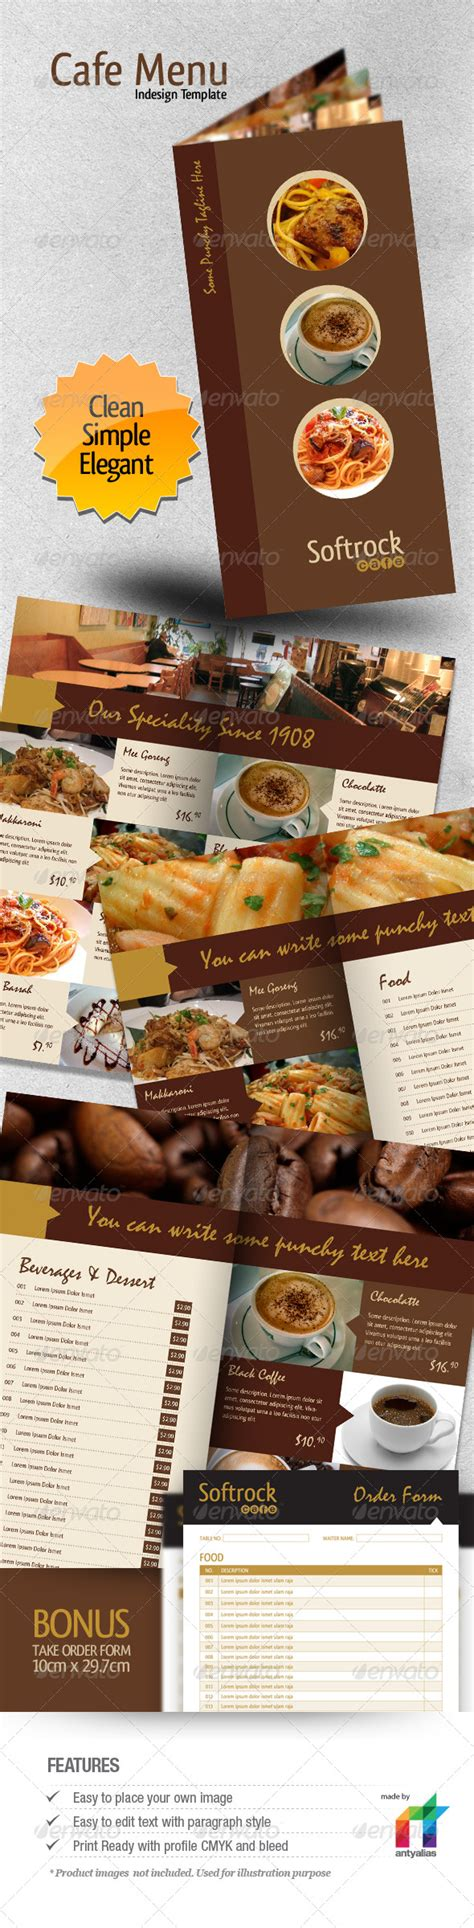 Cafe Menu Indesign Template By Antyalias Graphicriver Indesign Menu Template